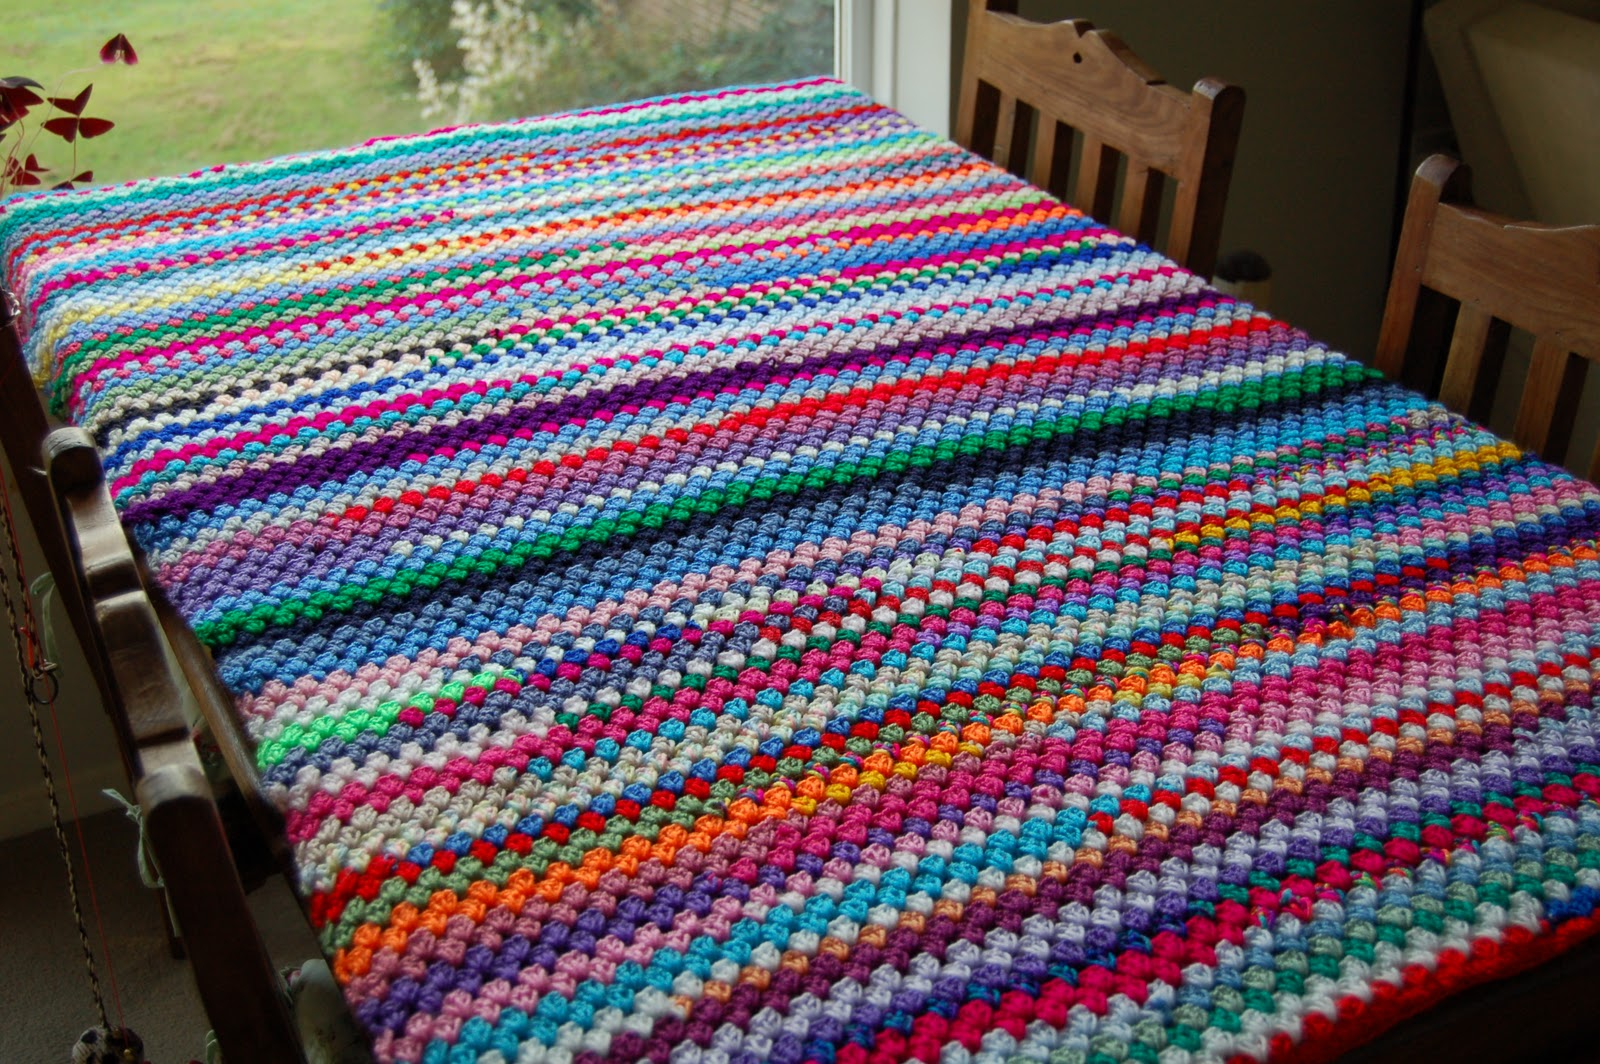 Lizzy Knits - Day by day!: First stitches of the year